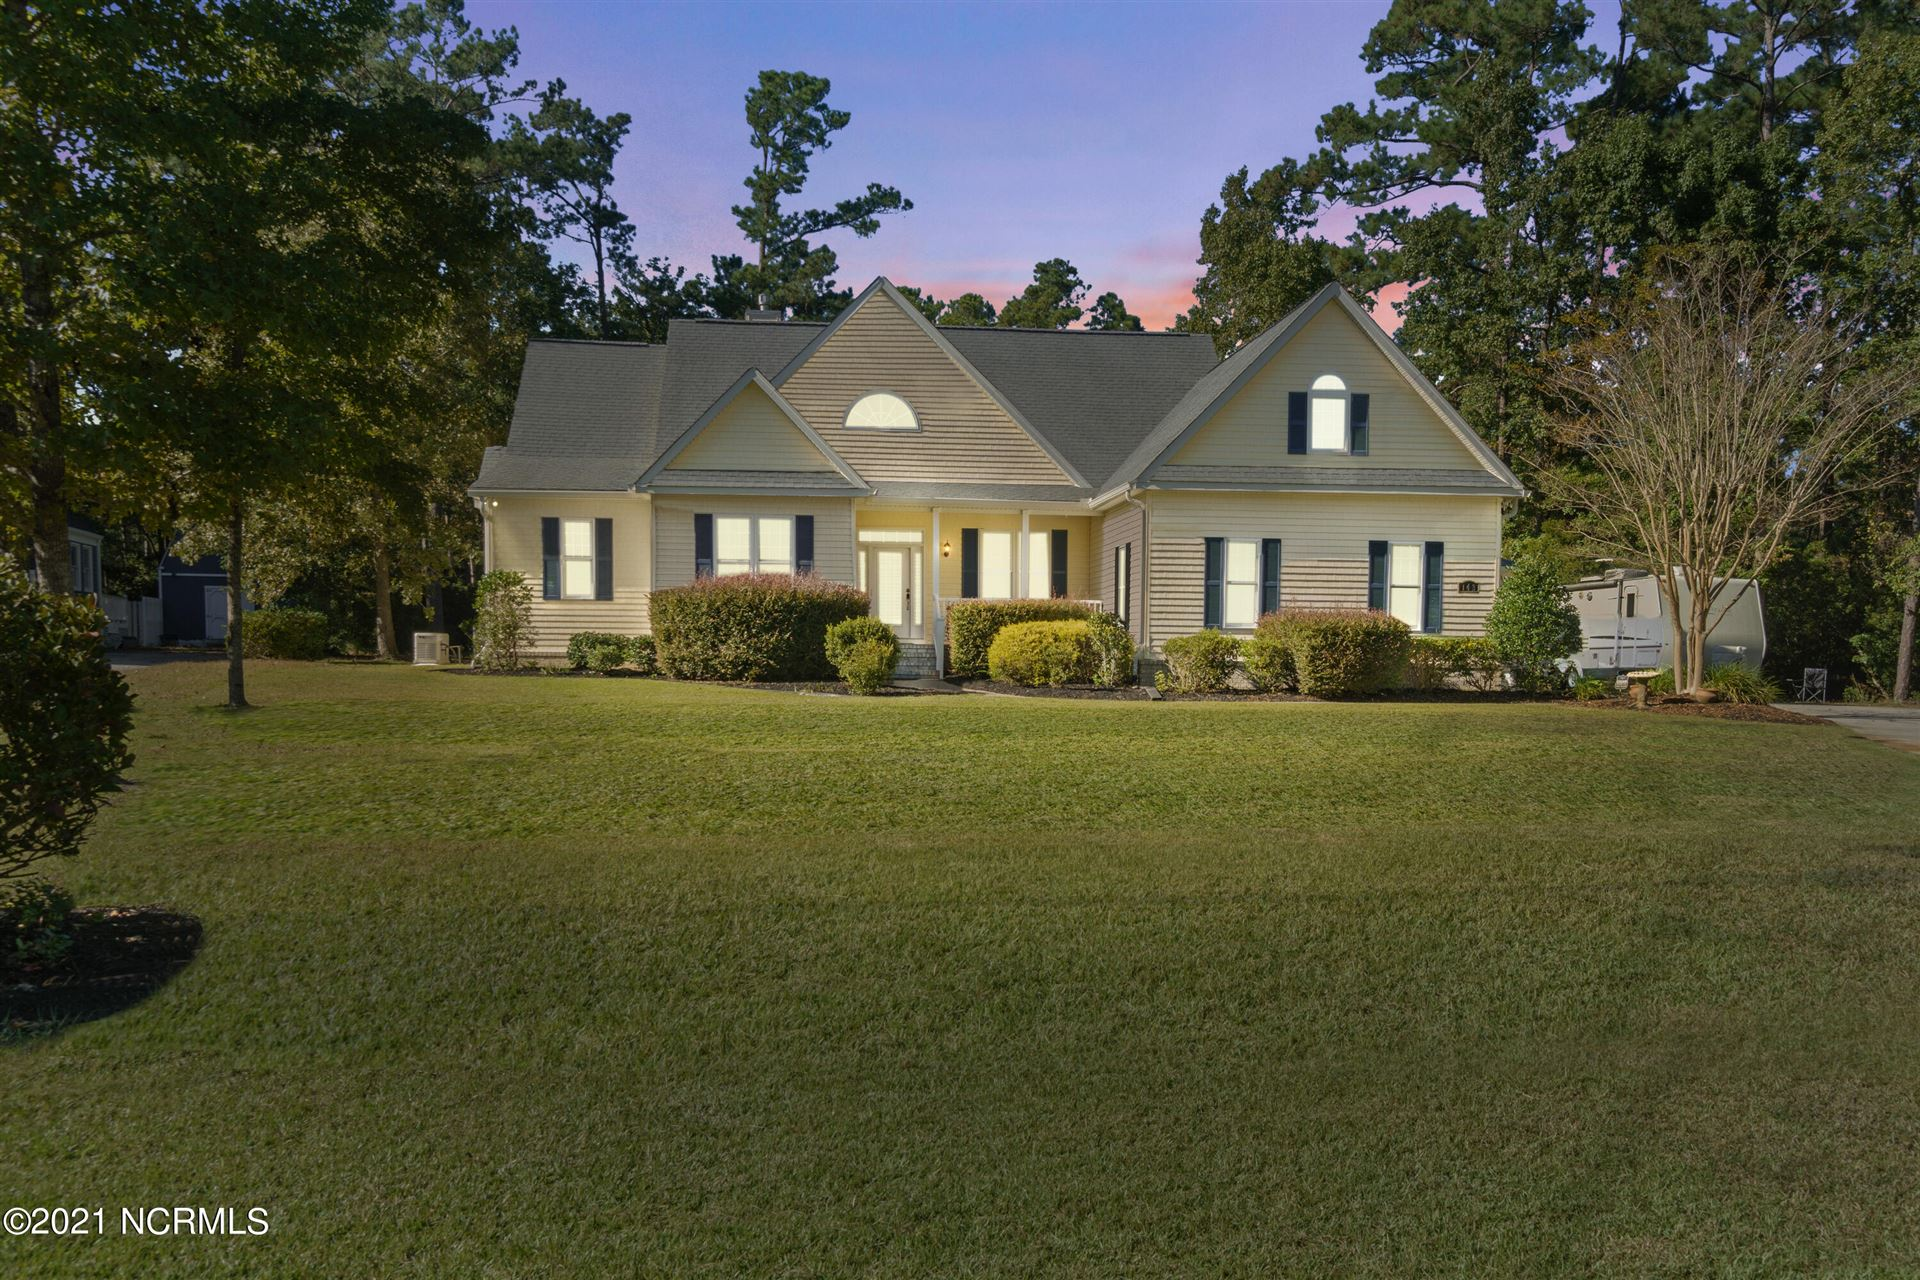 Photo of 143 Country Club Drive, Shallotte, NC 28470 (MLS # 100296170)